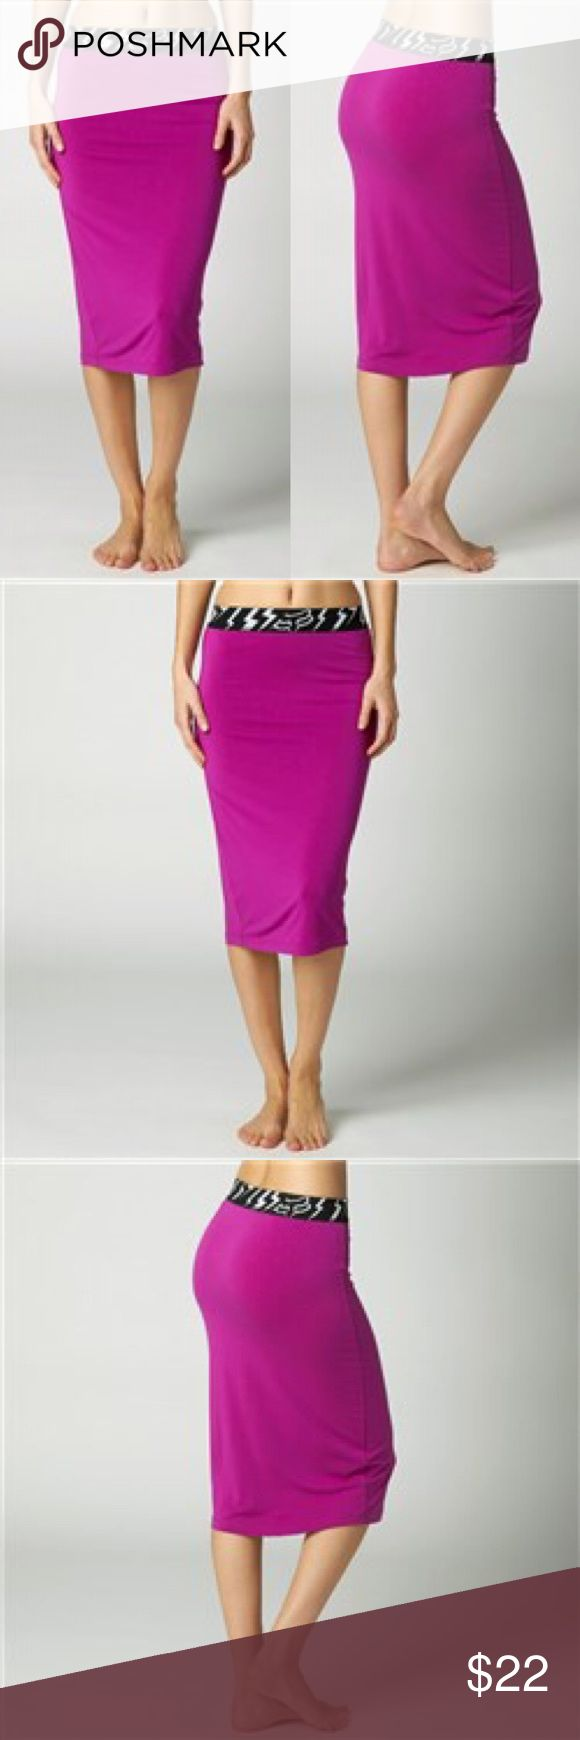 "🆕Fox Racing Velocity Women's Skirt 95% Rayon 5% Spandex Jersey, 220 grams Fitted pencil skirt Fox logo jacquard elastic waistband 25"" Body length Green Fox Skirts Pencil"